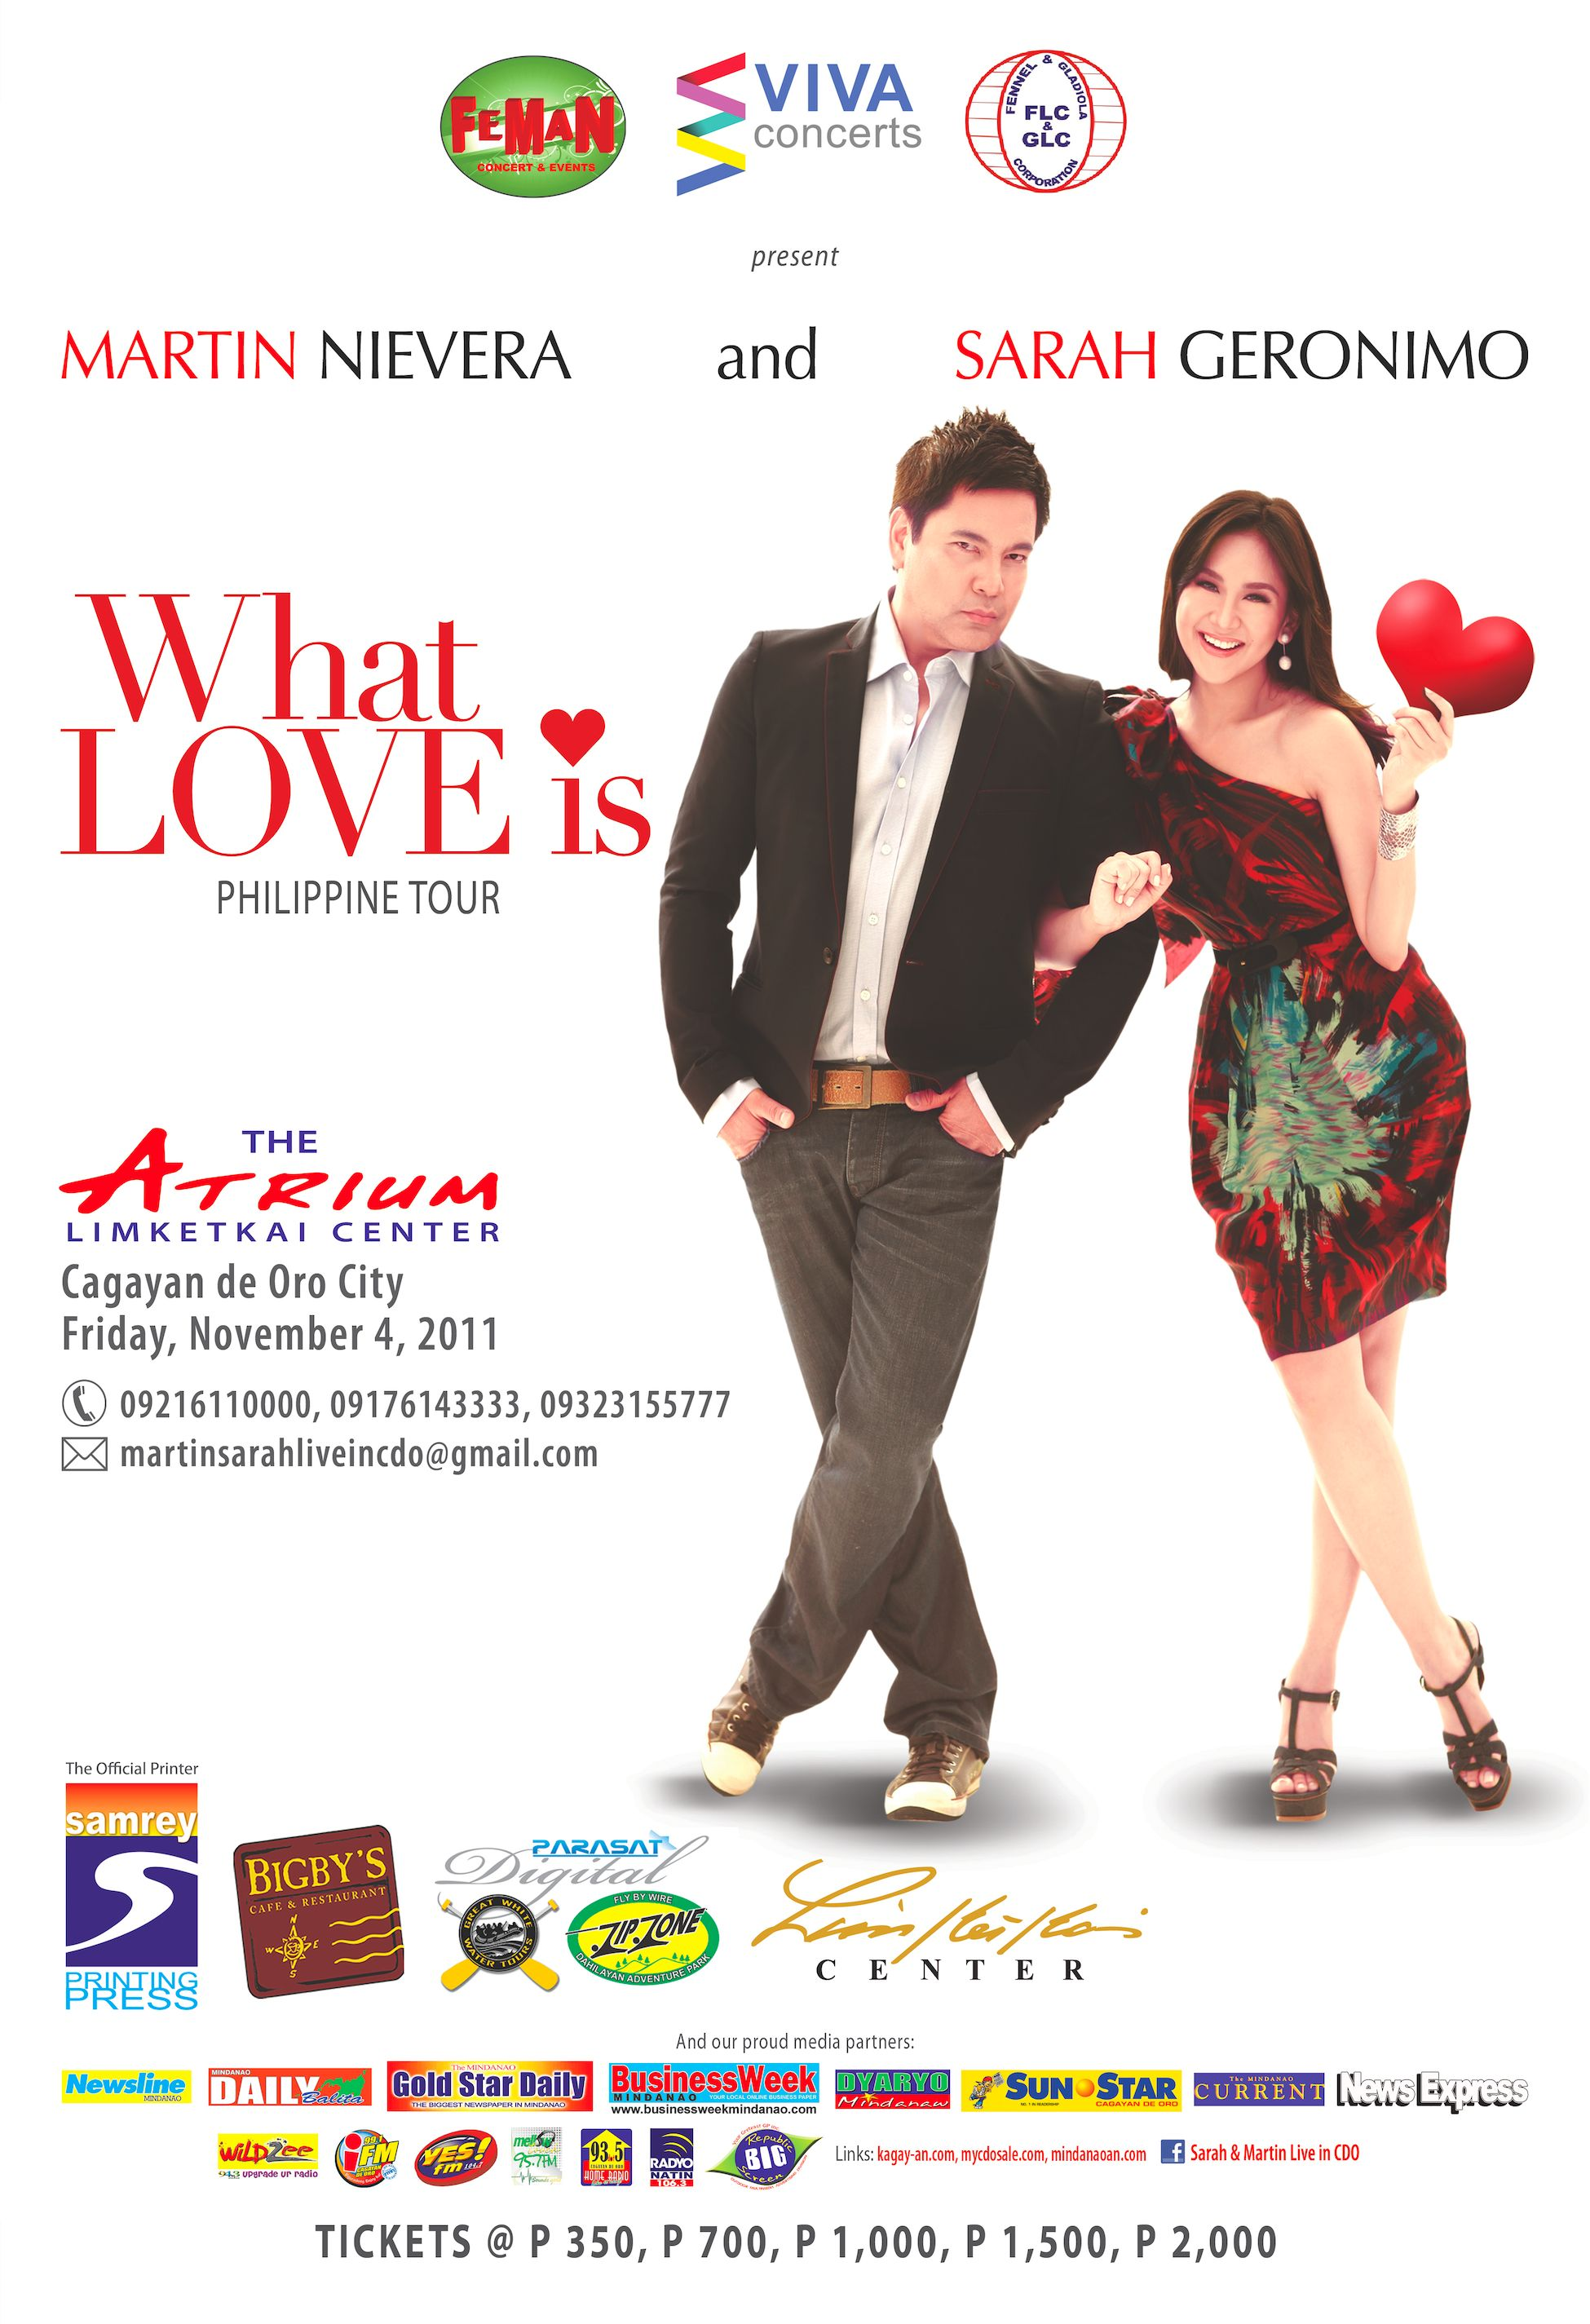 Update: Martin Nievera and Sarah Geronimo Live in Cagayan de Oro concert – Mindanaoan.com is an official media partner!